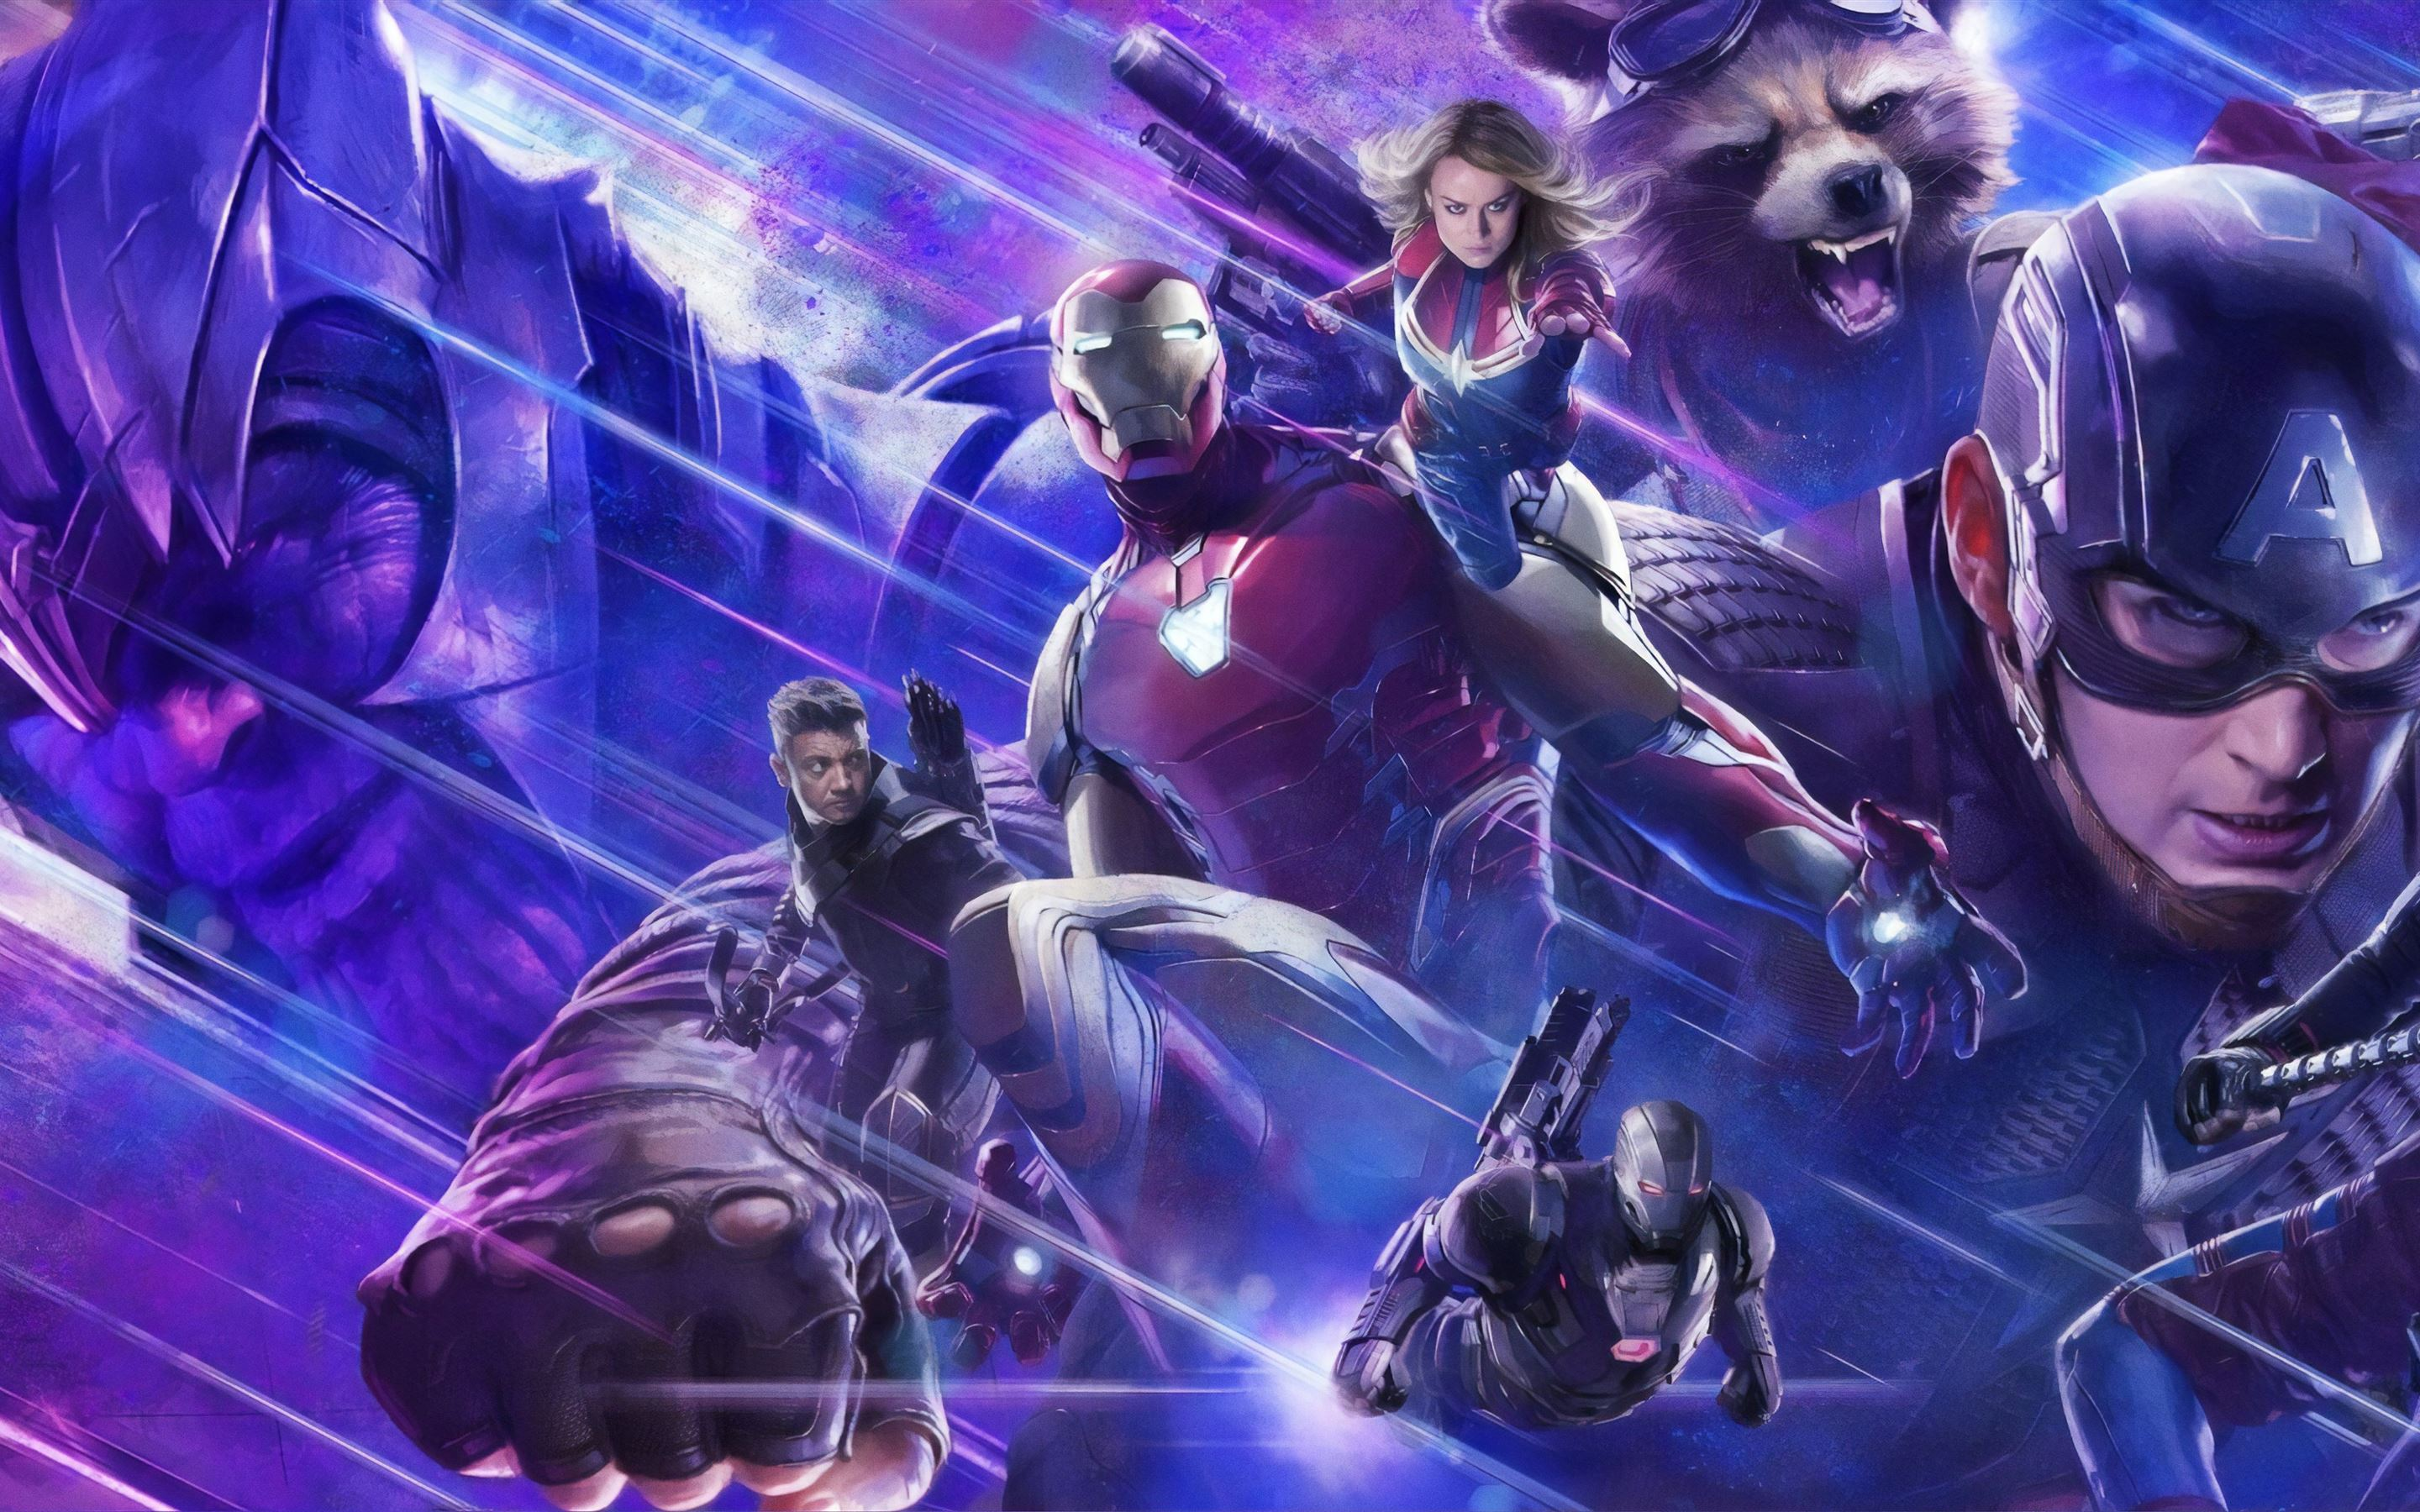 5k Avengers Endgame 2019 New Mac Wallpaper Download